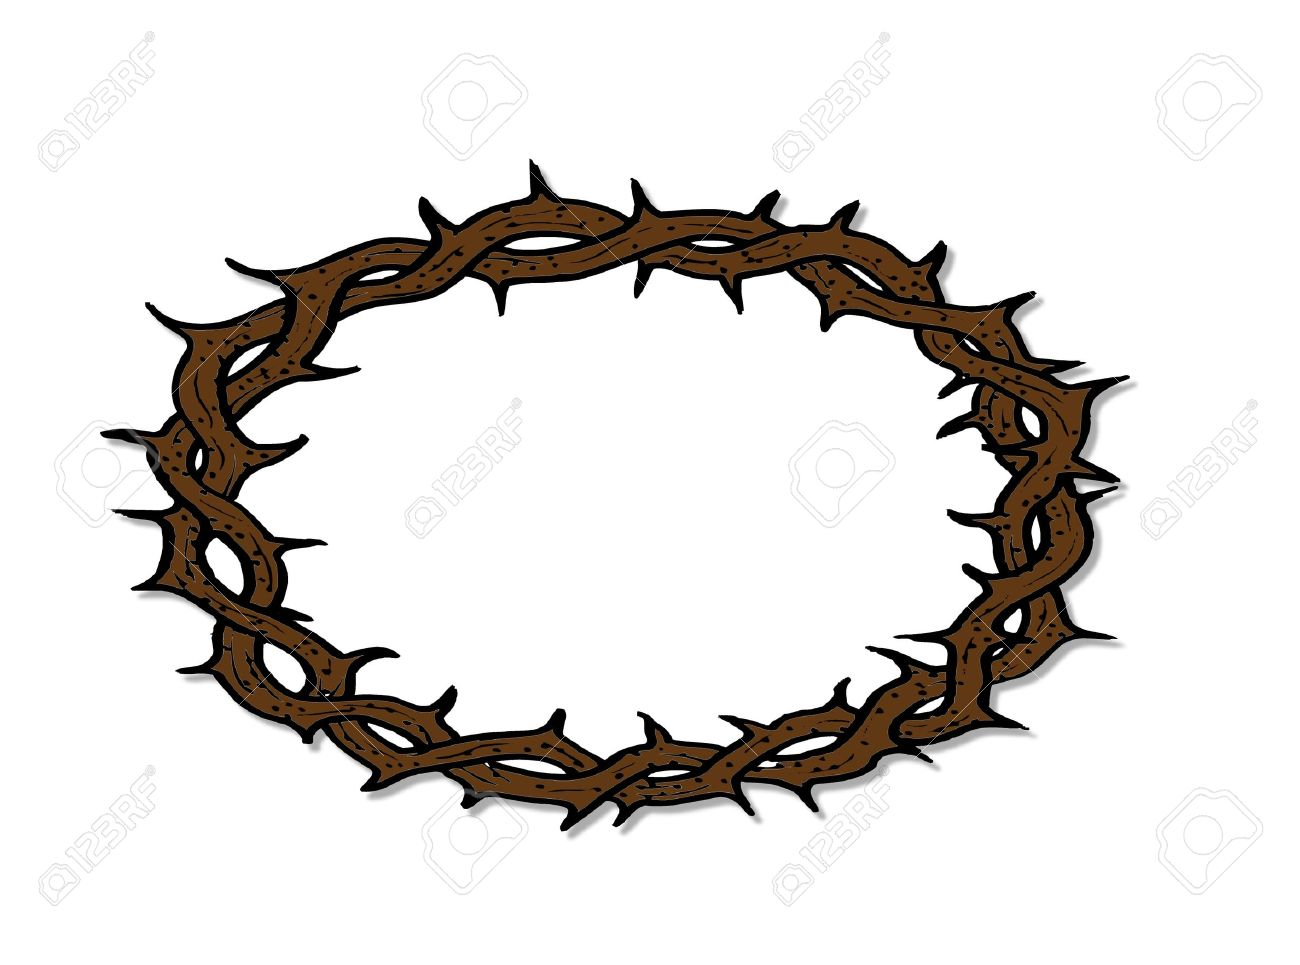 crown of thorns royalty free cliparts vectors and stock rh 123rf com crown of thorns clipart free crown of thorns clipart black and white